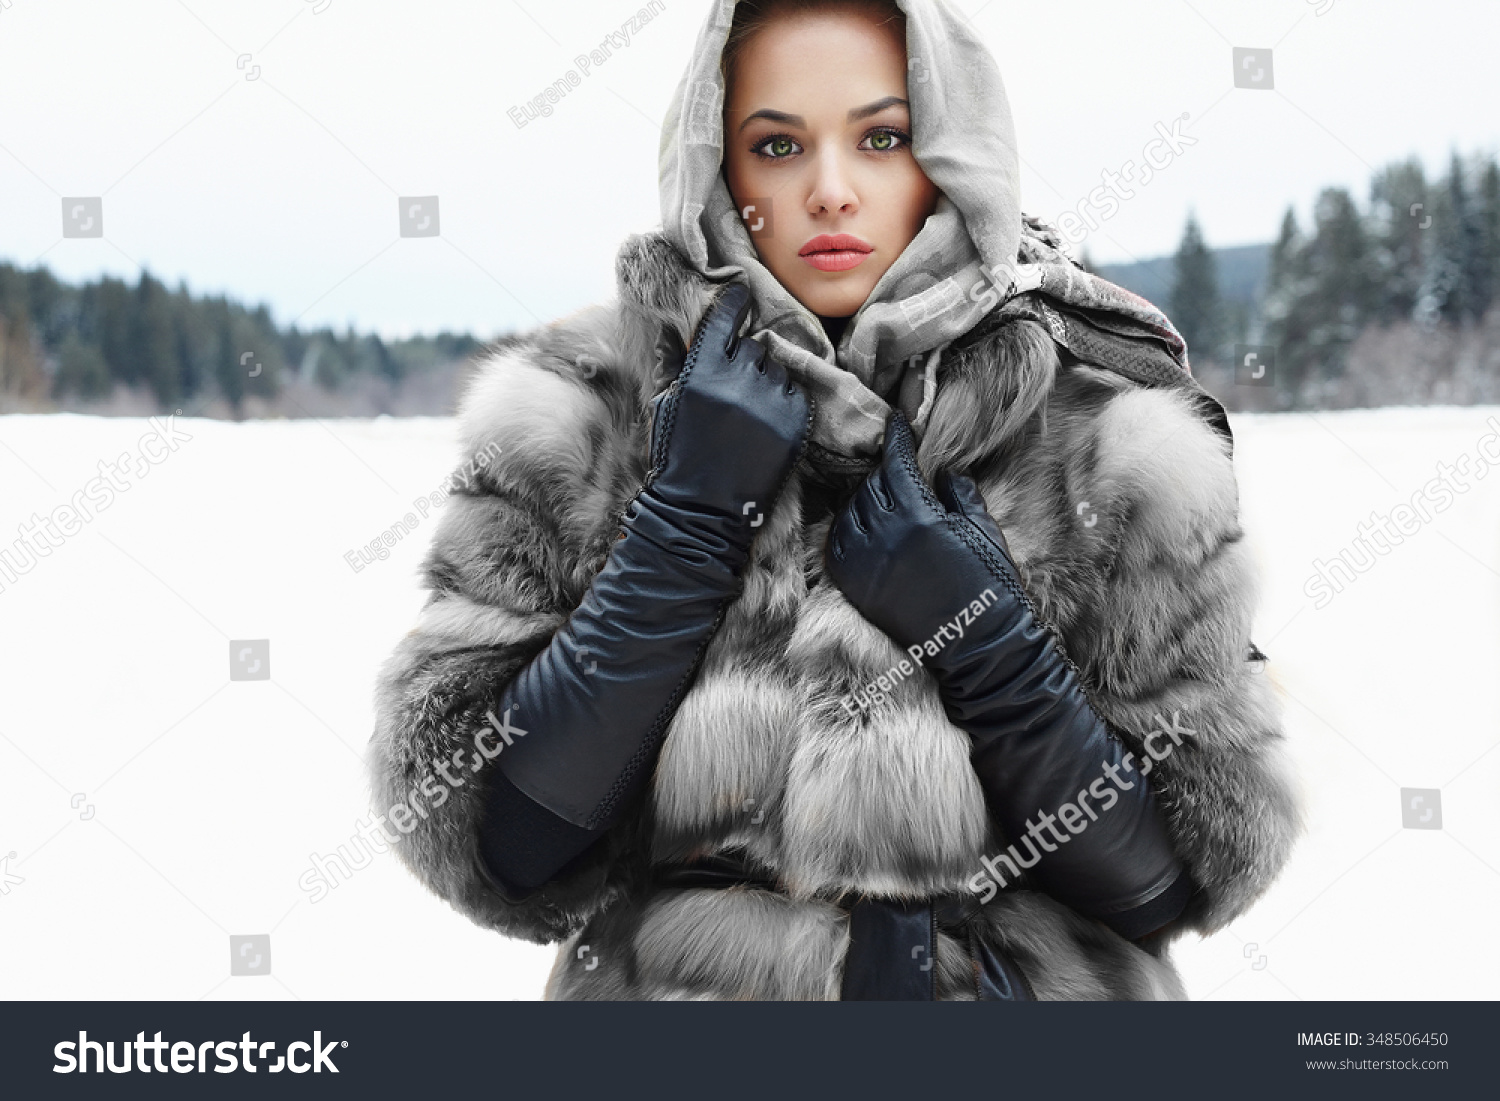 Ladies in leather gloves and boots - Beauty Model Girl In Winter Time Beautiful Young Woman In Fashionable Fur Coat Leather